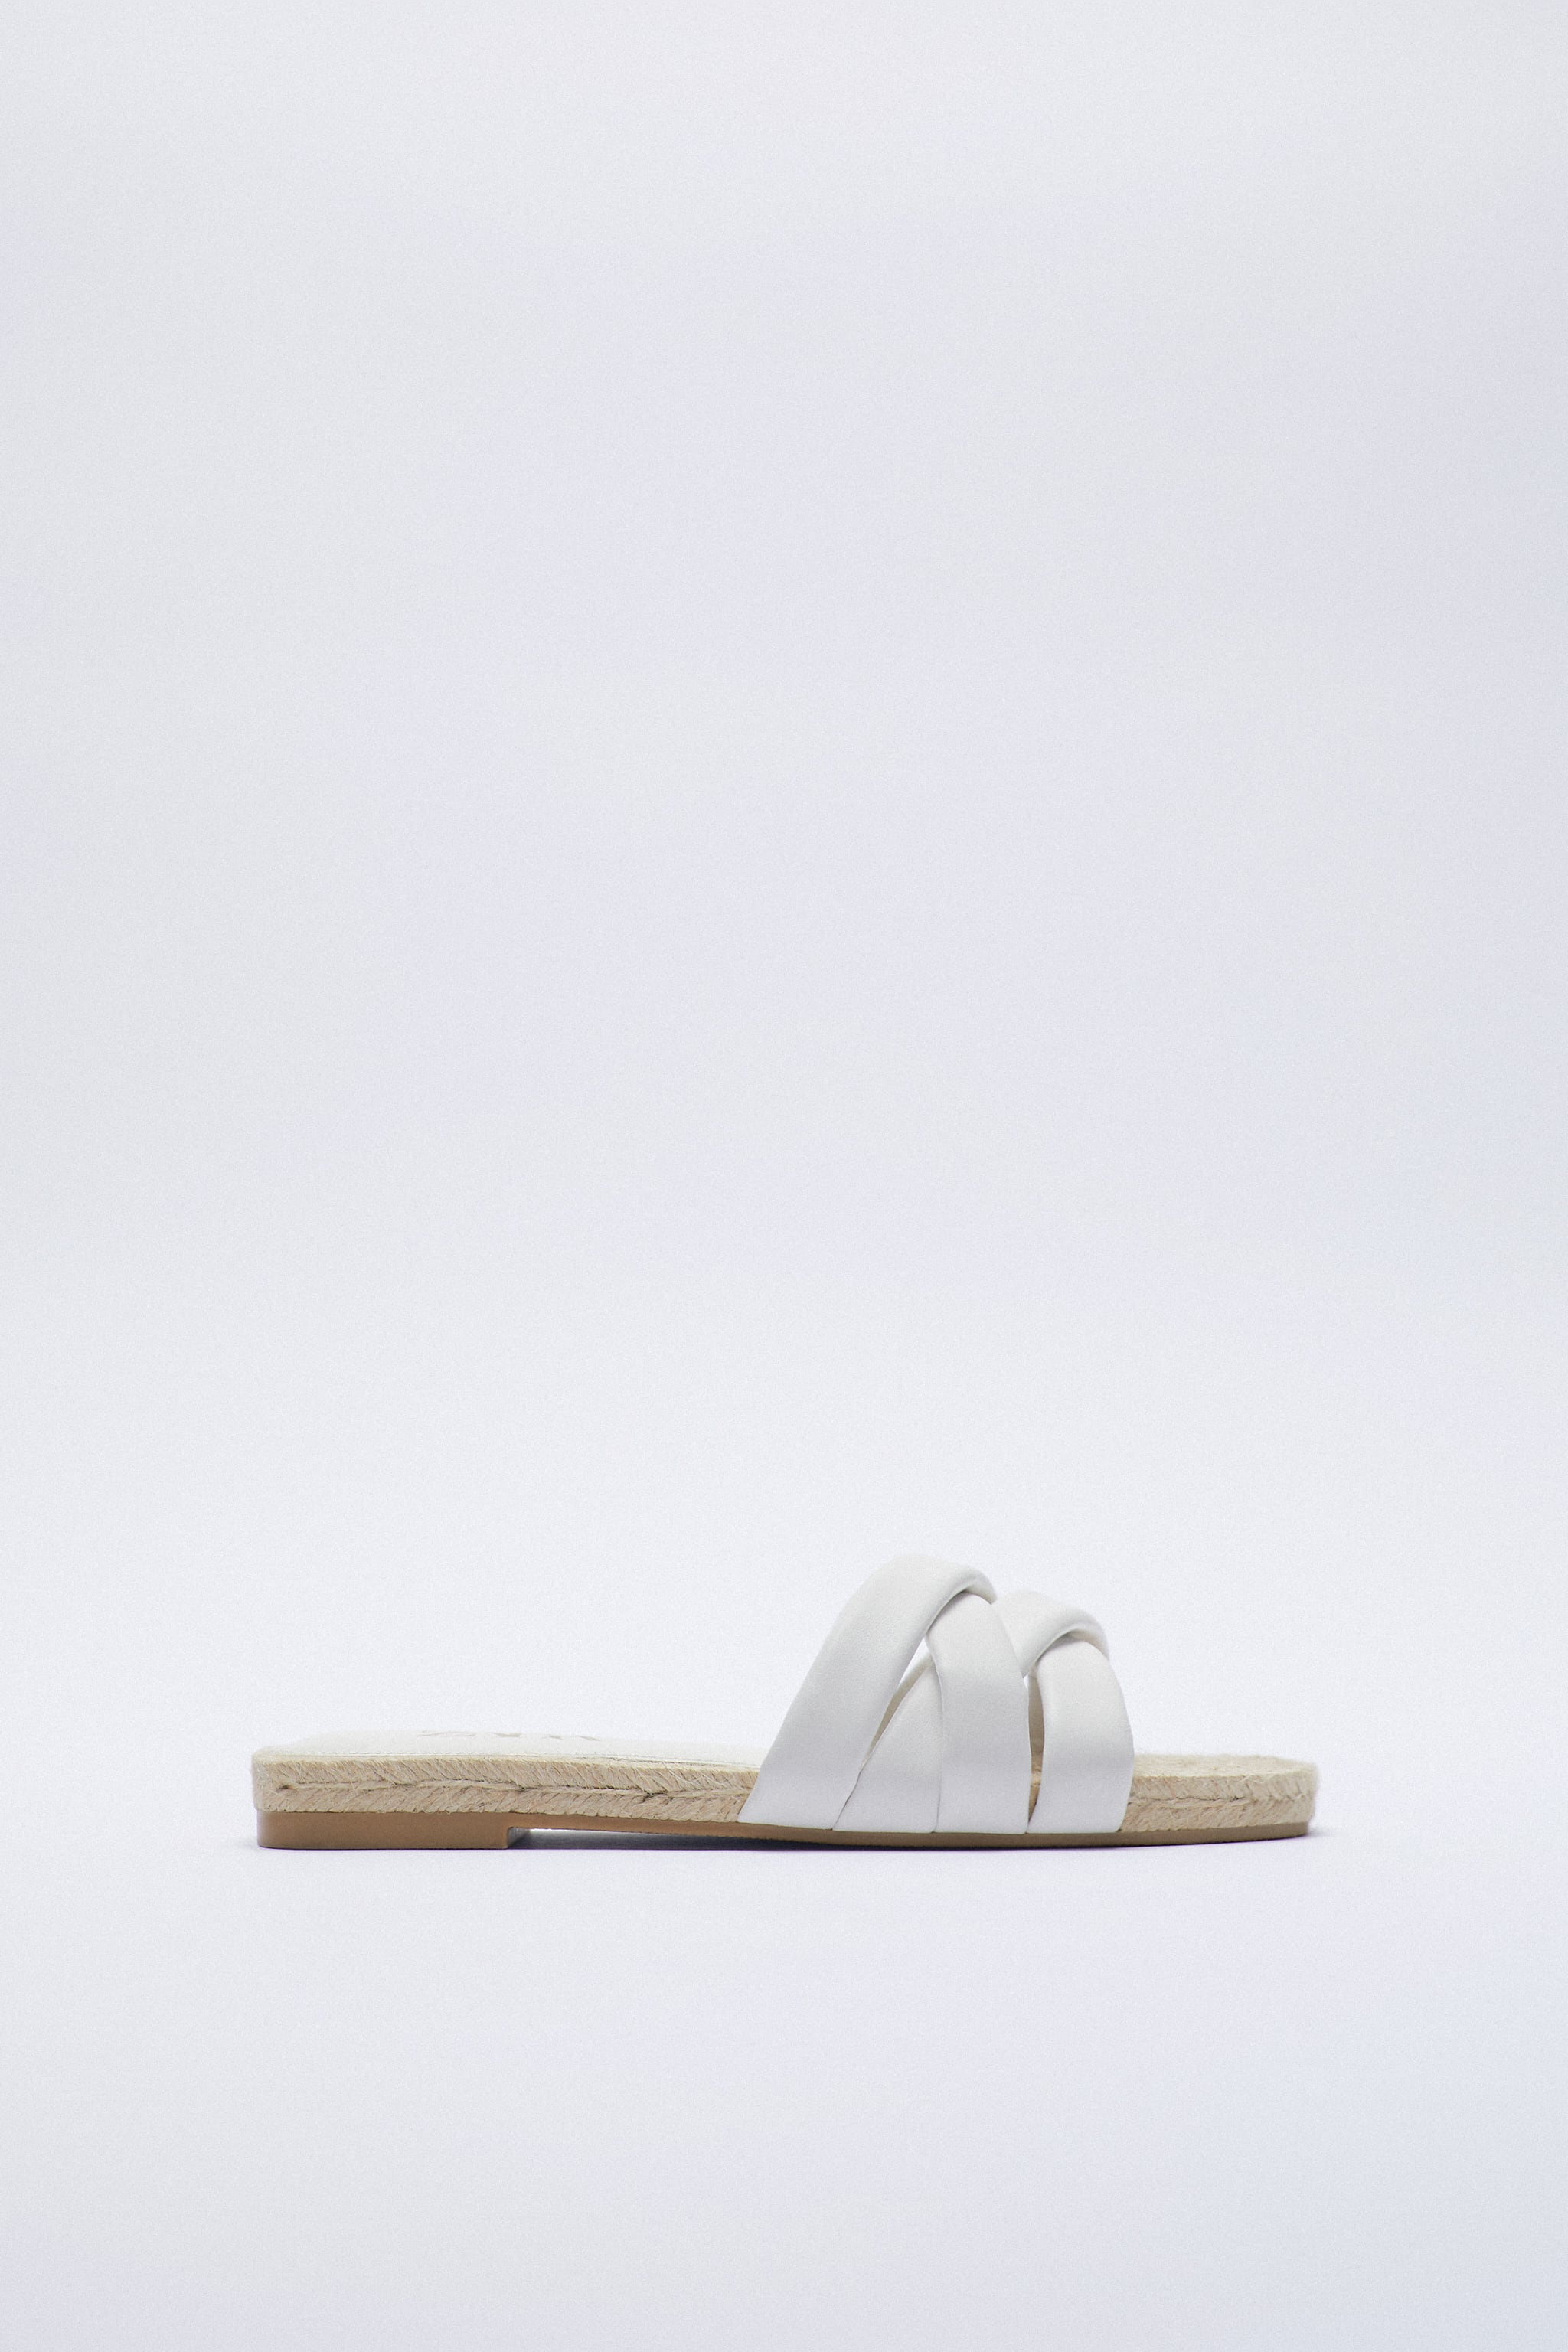 Zara JUTE FLAT QUILTED LEATHER SANDALS